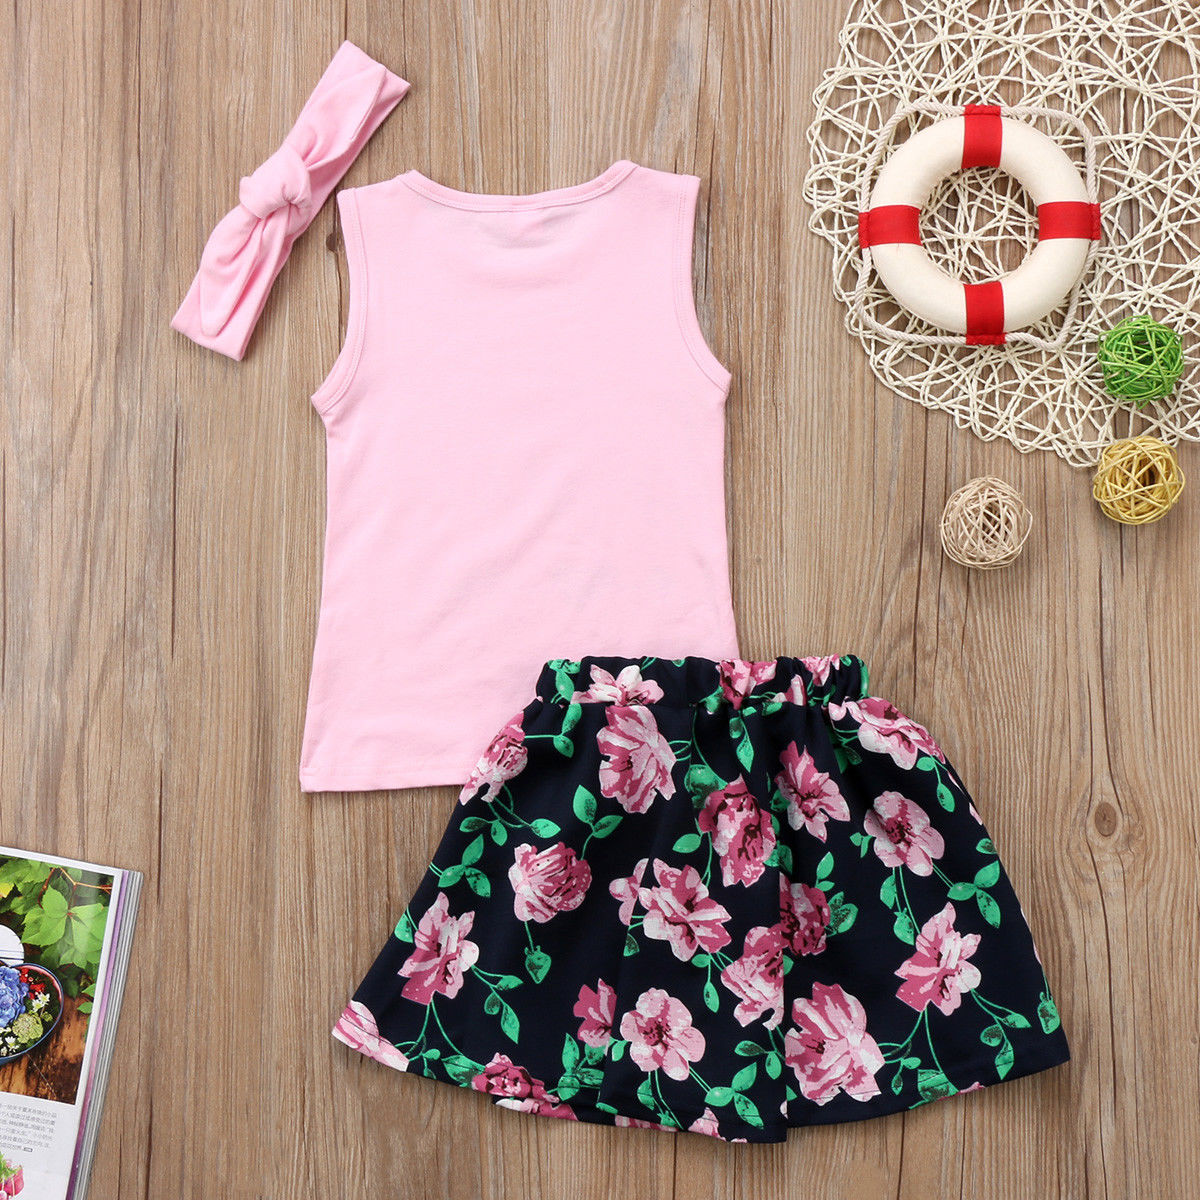 UK 3PCS Newborn Toddler Baby Girl Outfits Clothes Romper Tops+Strap Skirt Dress